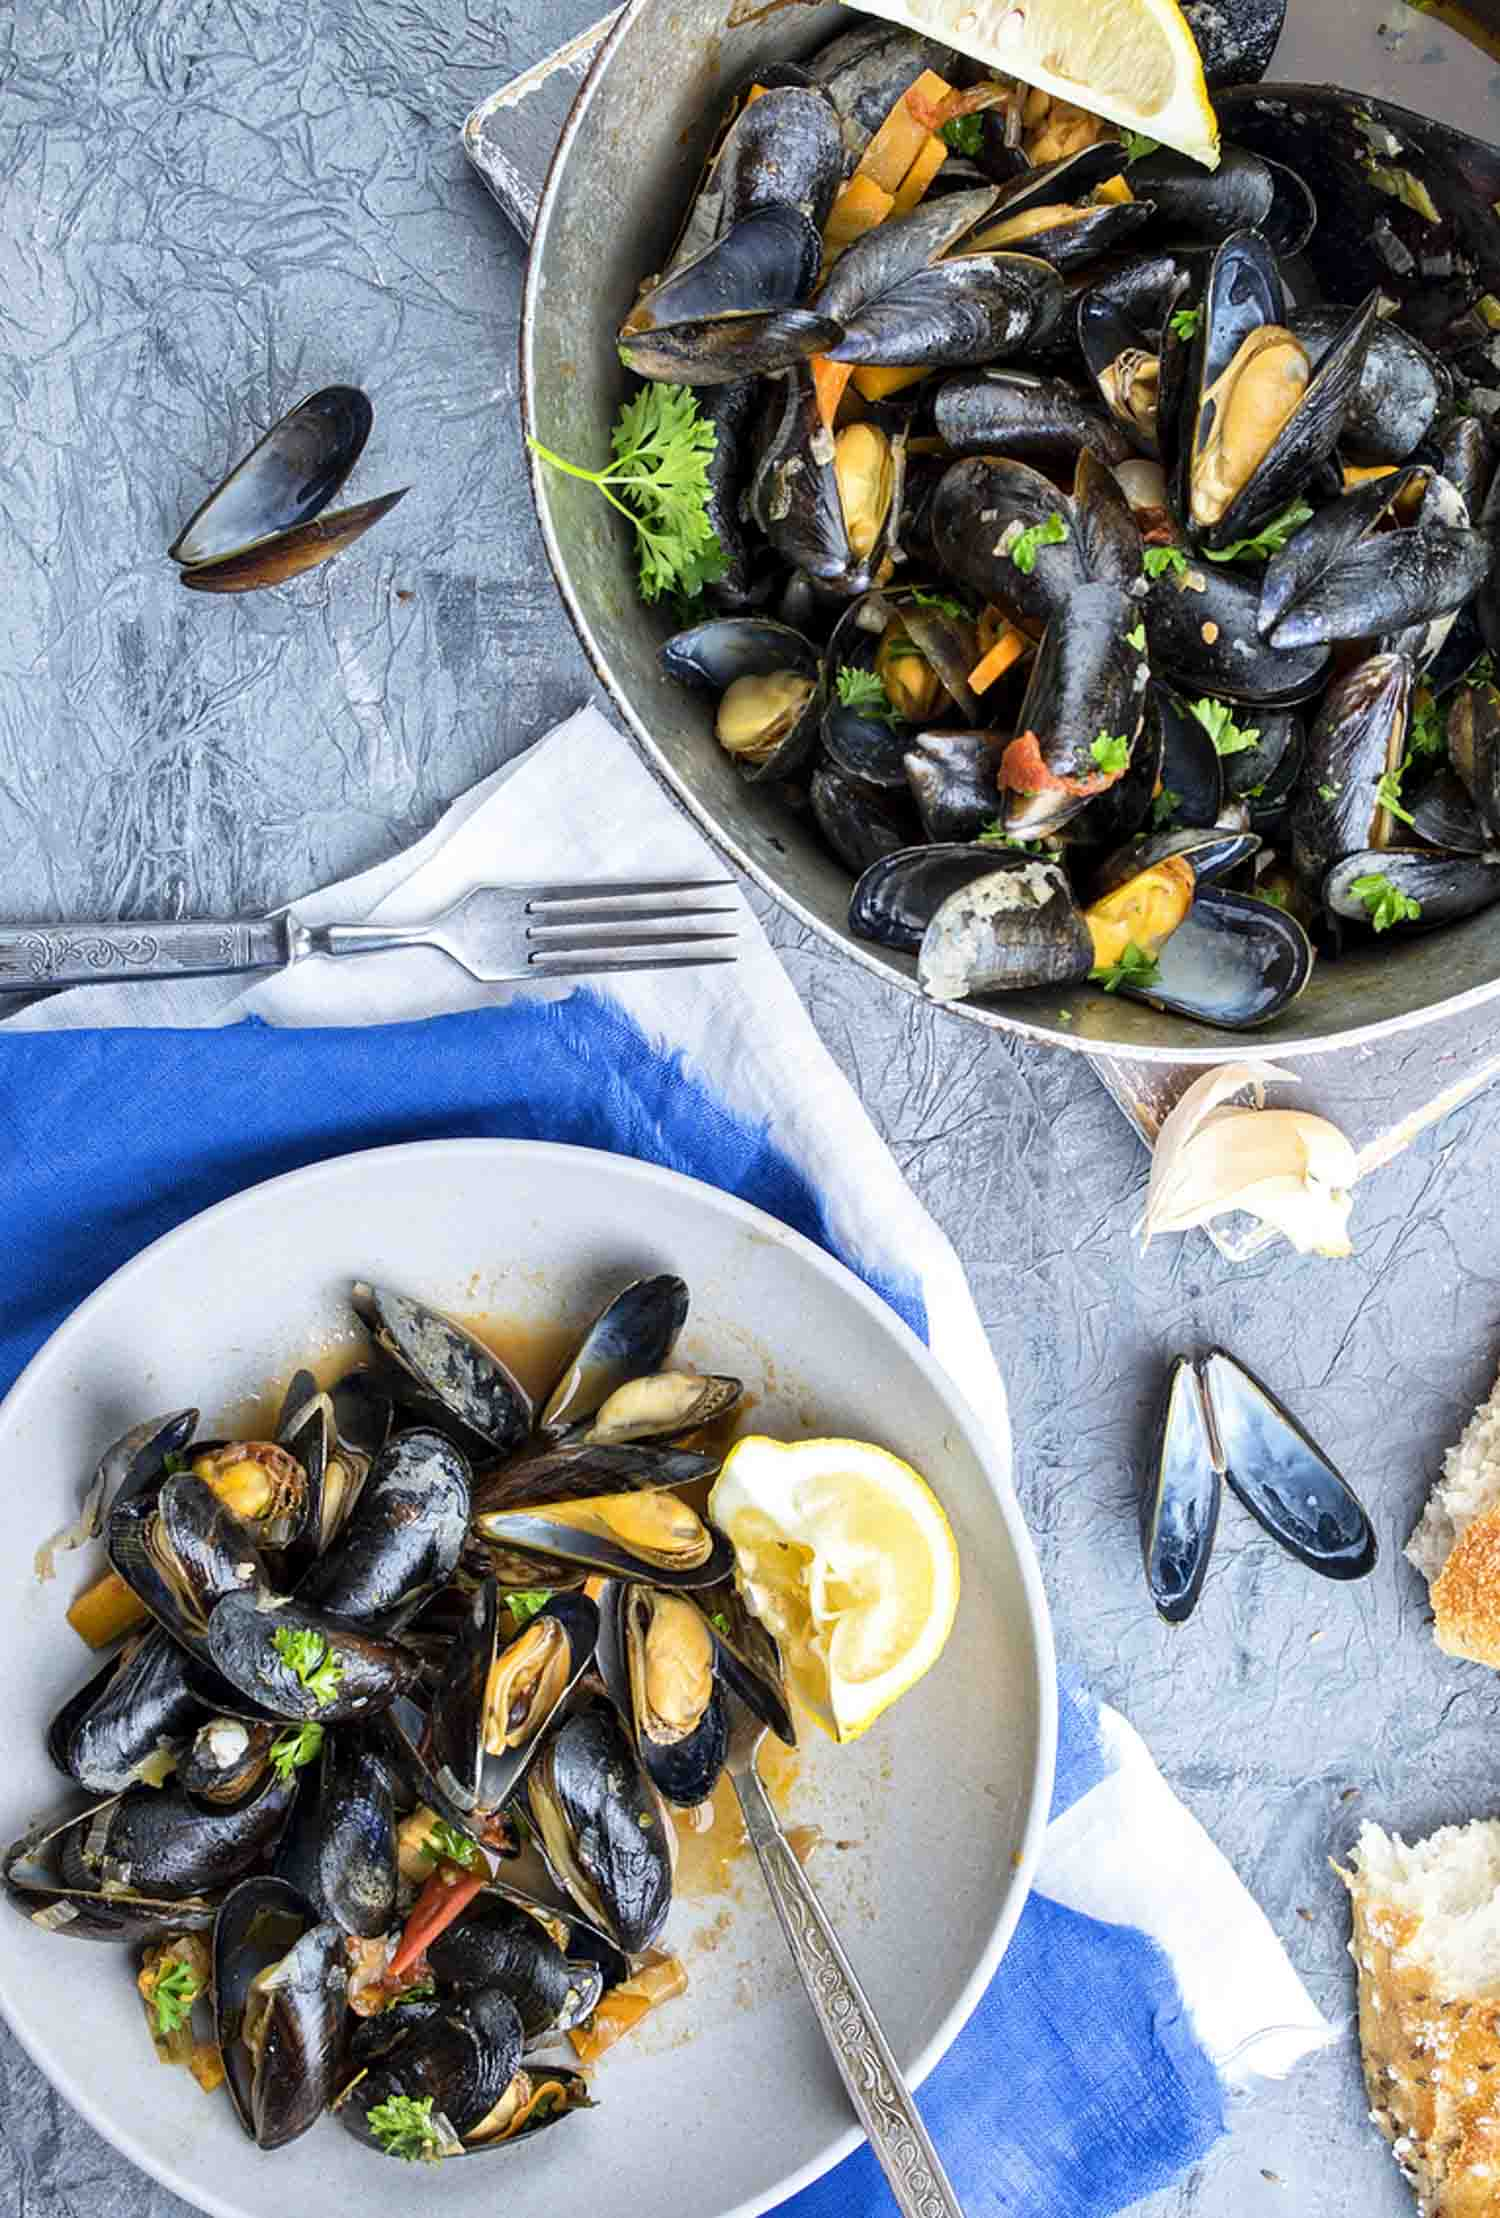 Nova Scotia Mussels on Plate